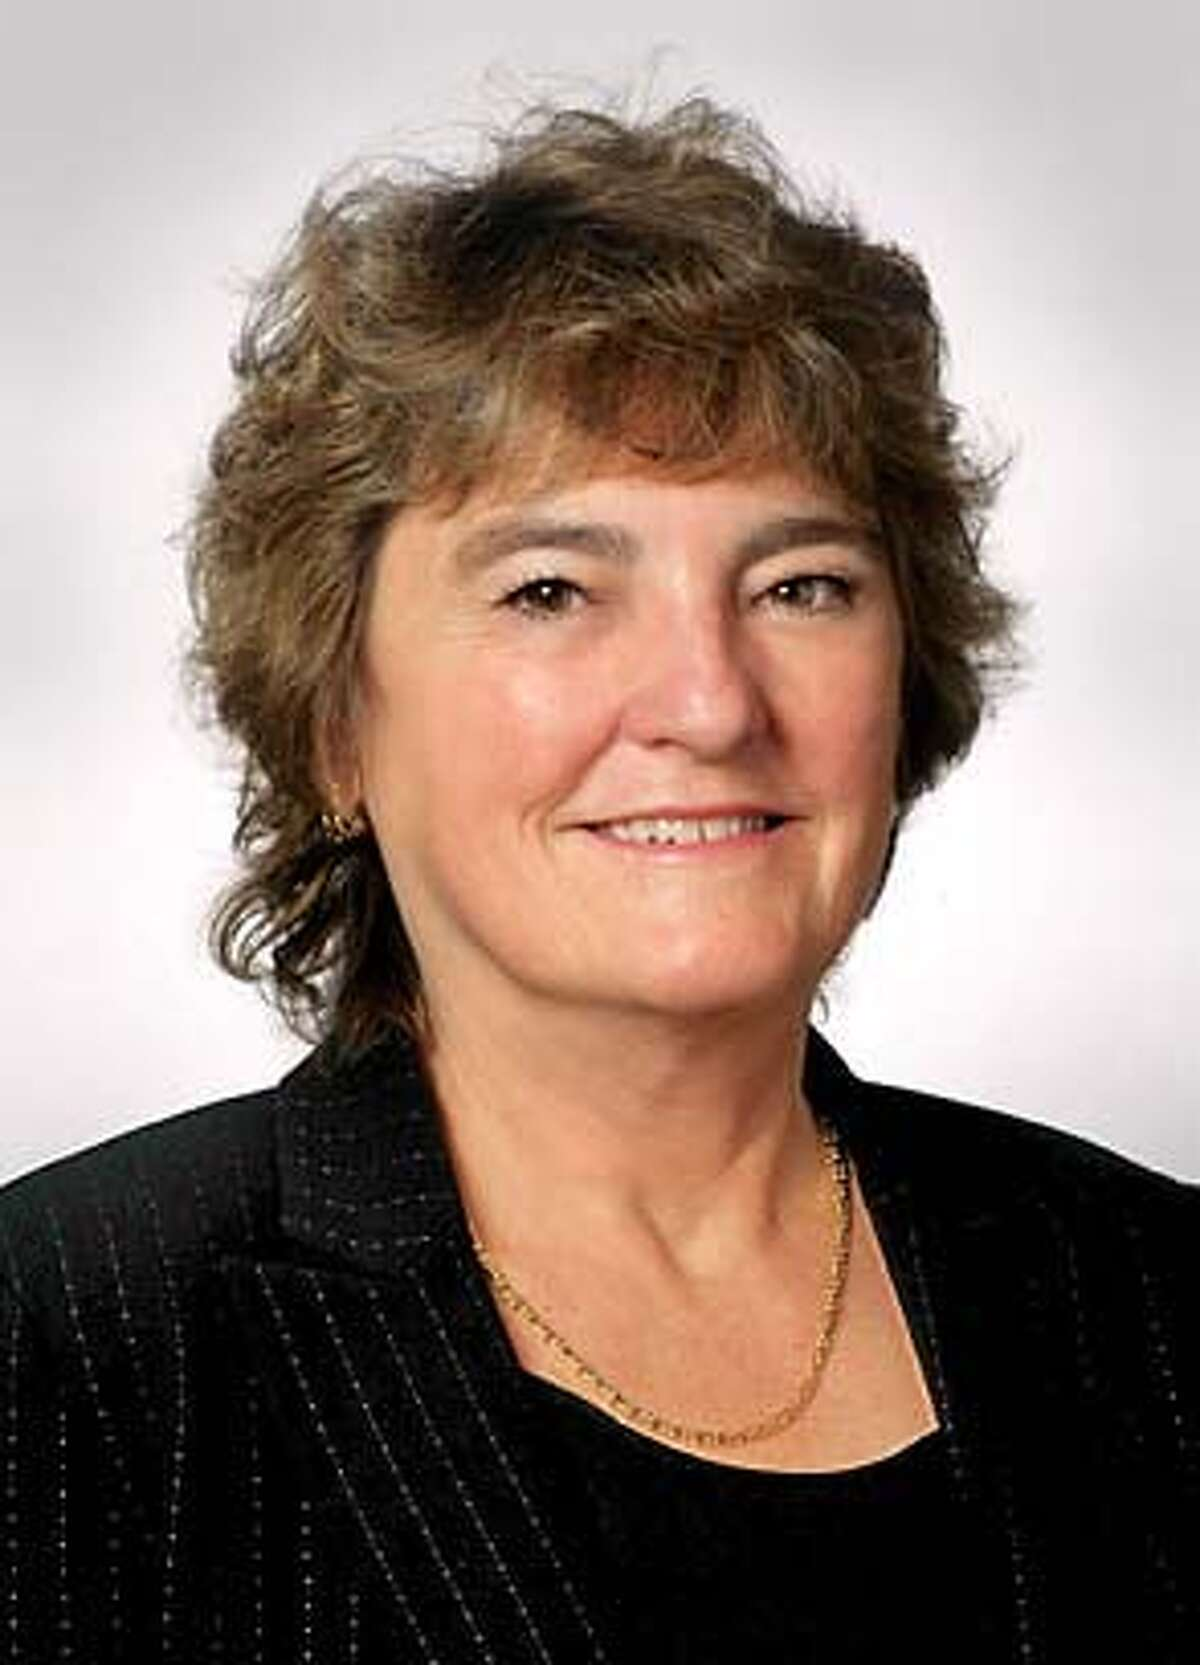 Elizabeth Clark Partner and chair of the real estate practice group Fitzgerald Abbott & Beardsley Elizabeth Clark People in Business listing, Monday, August 20, 2007